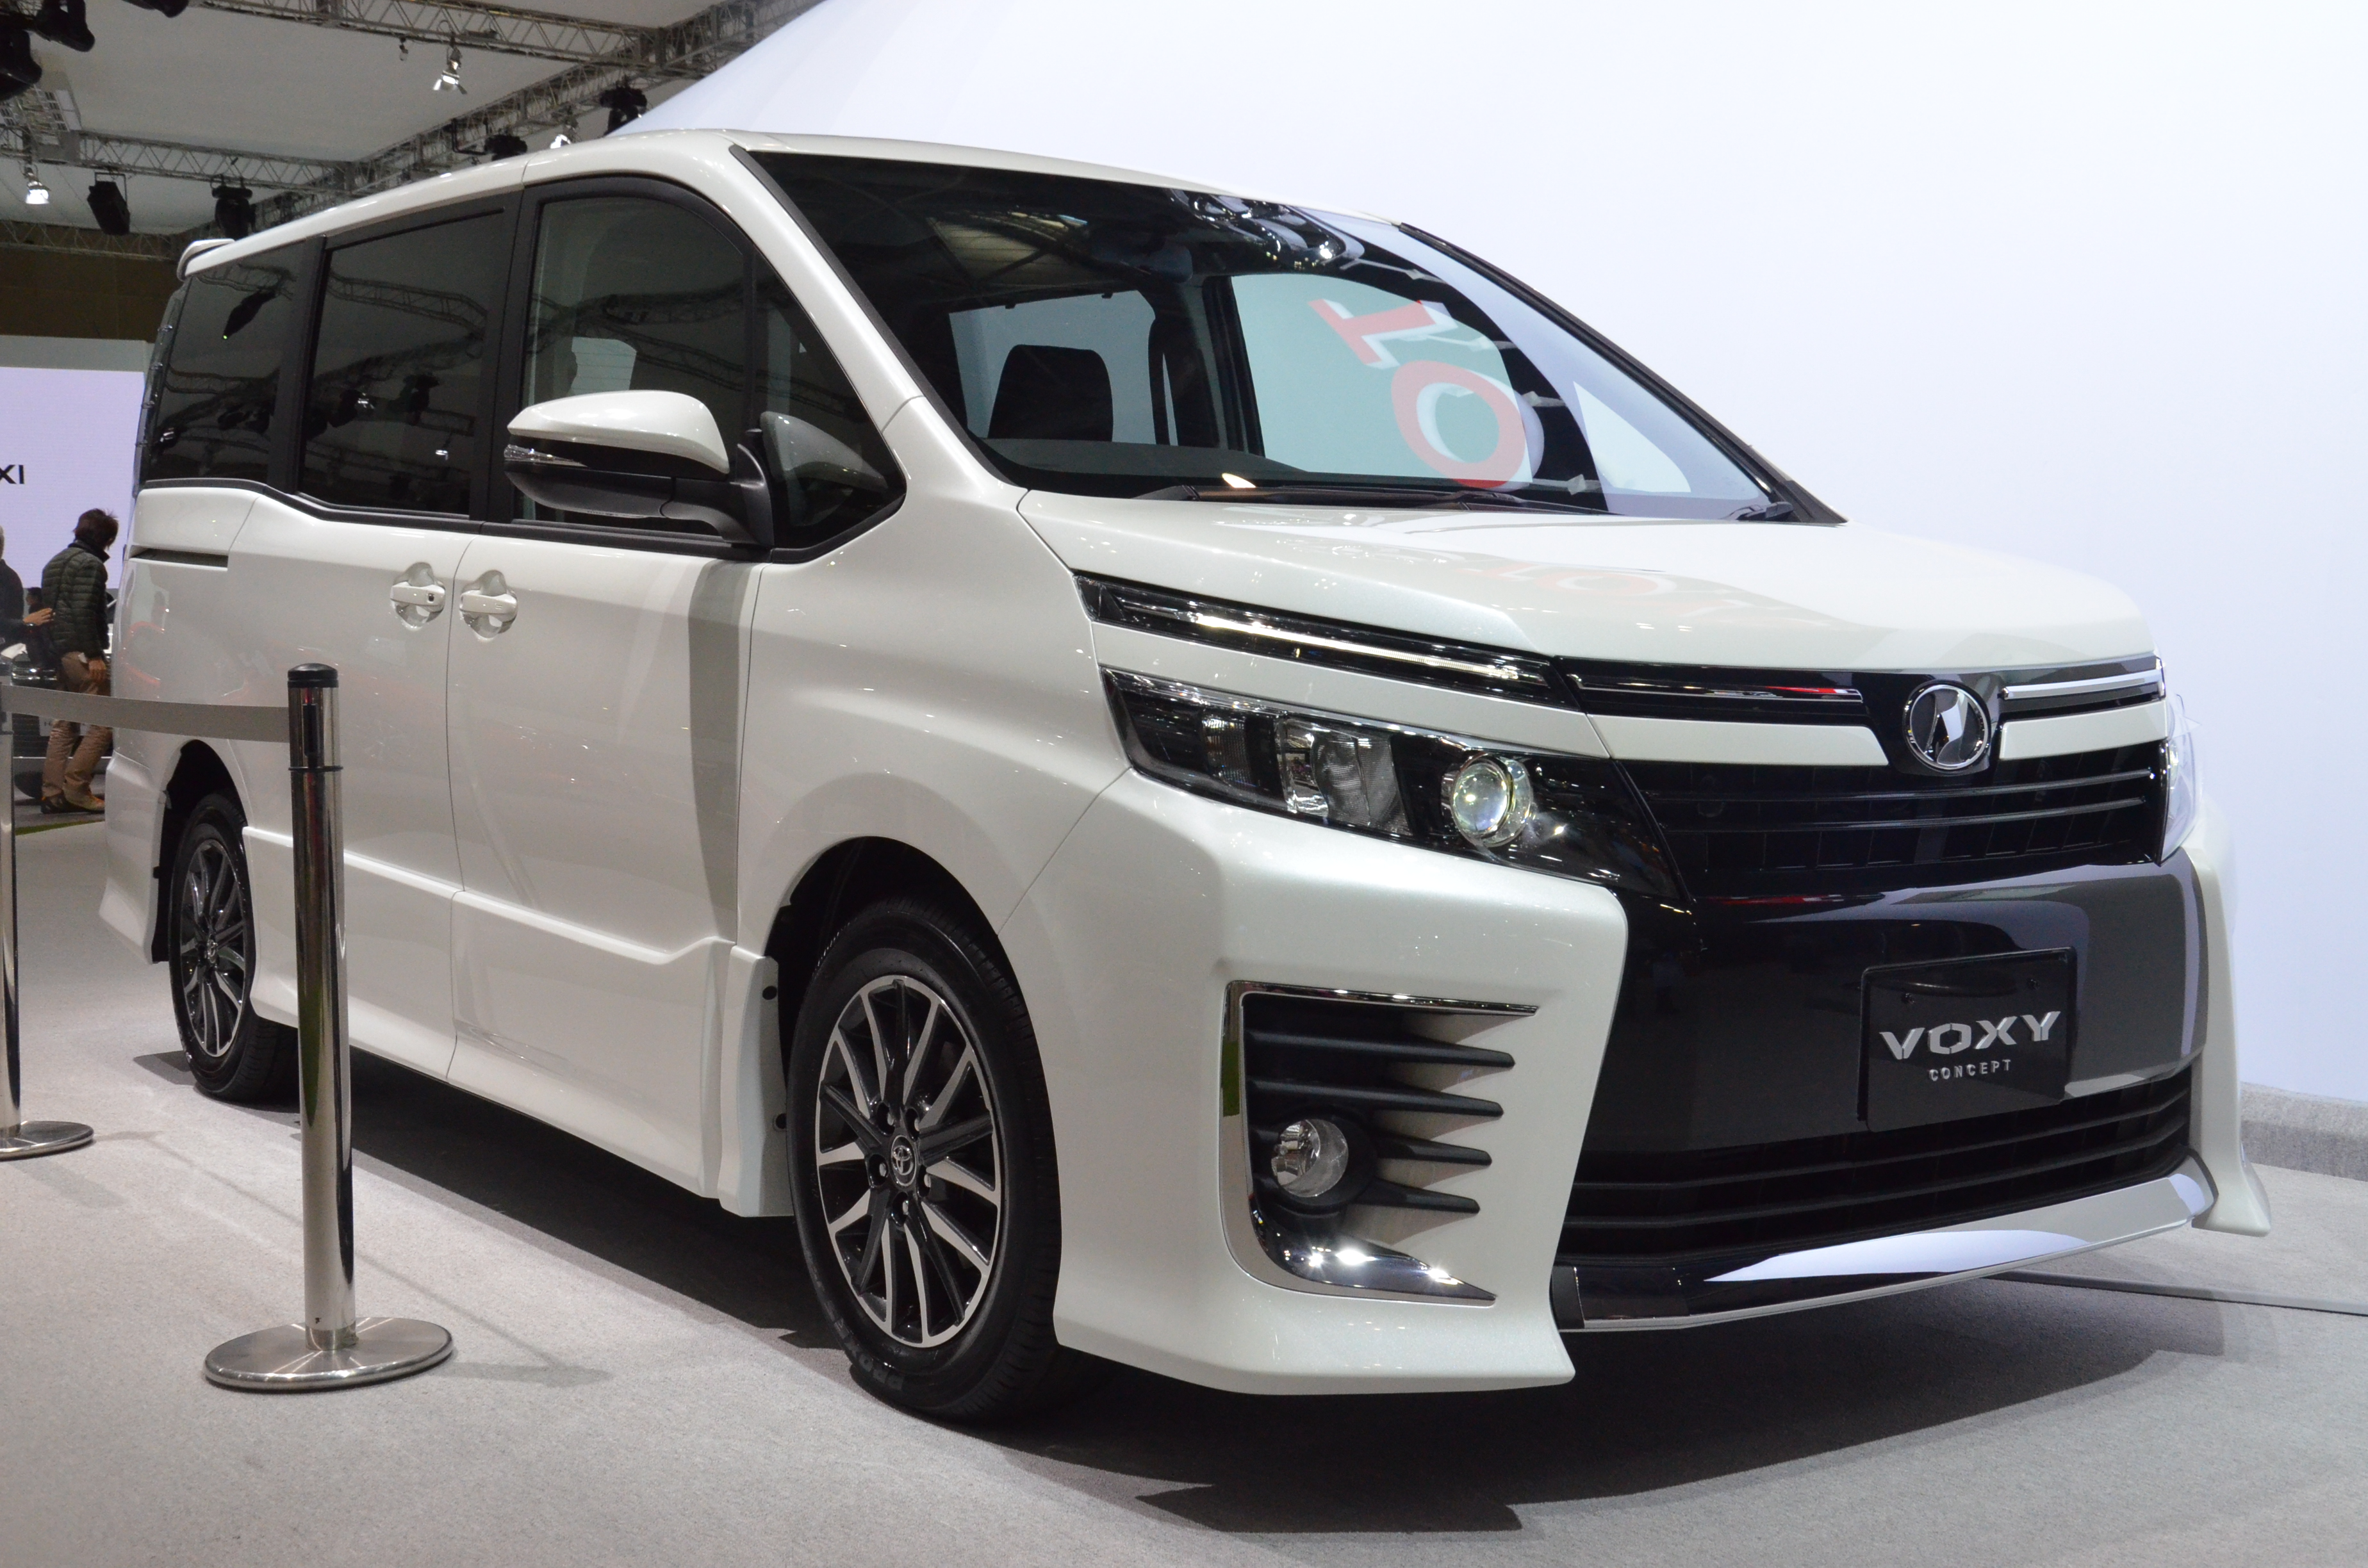 2014 Toyota Noah And Voxy Previewed At Tokyo 2013 Paul Tan